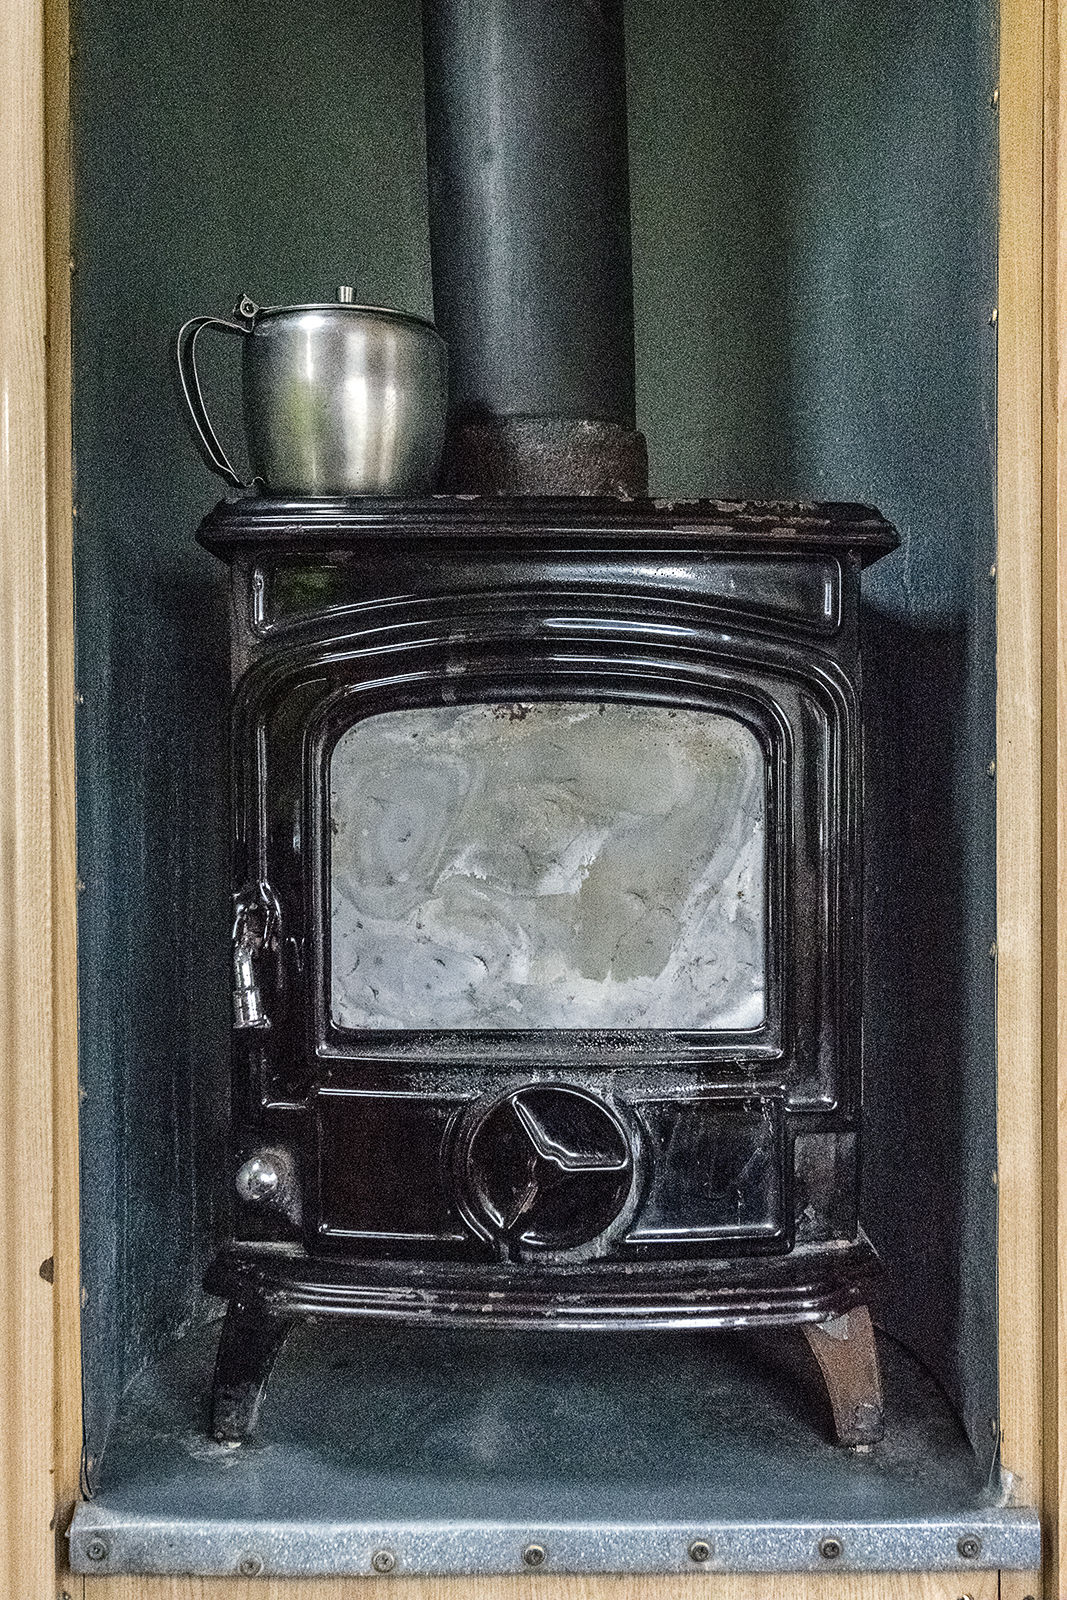 Jim and Ally Reilly's Stove in their caravan, Tipperary, Ireland 2019